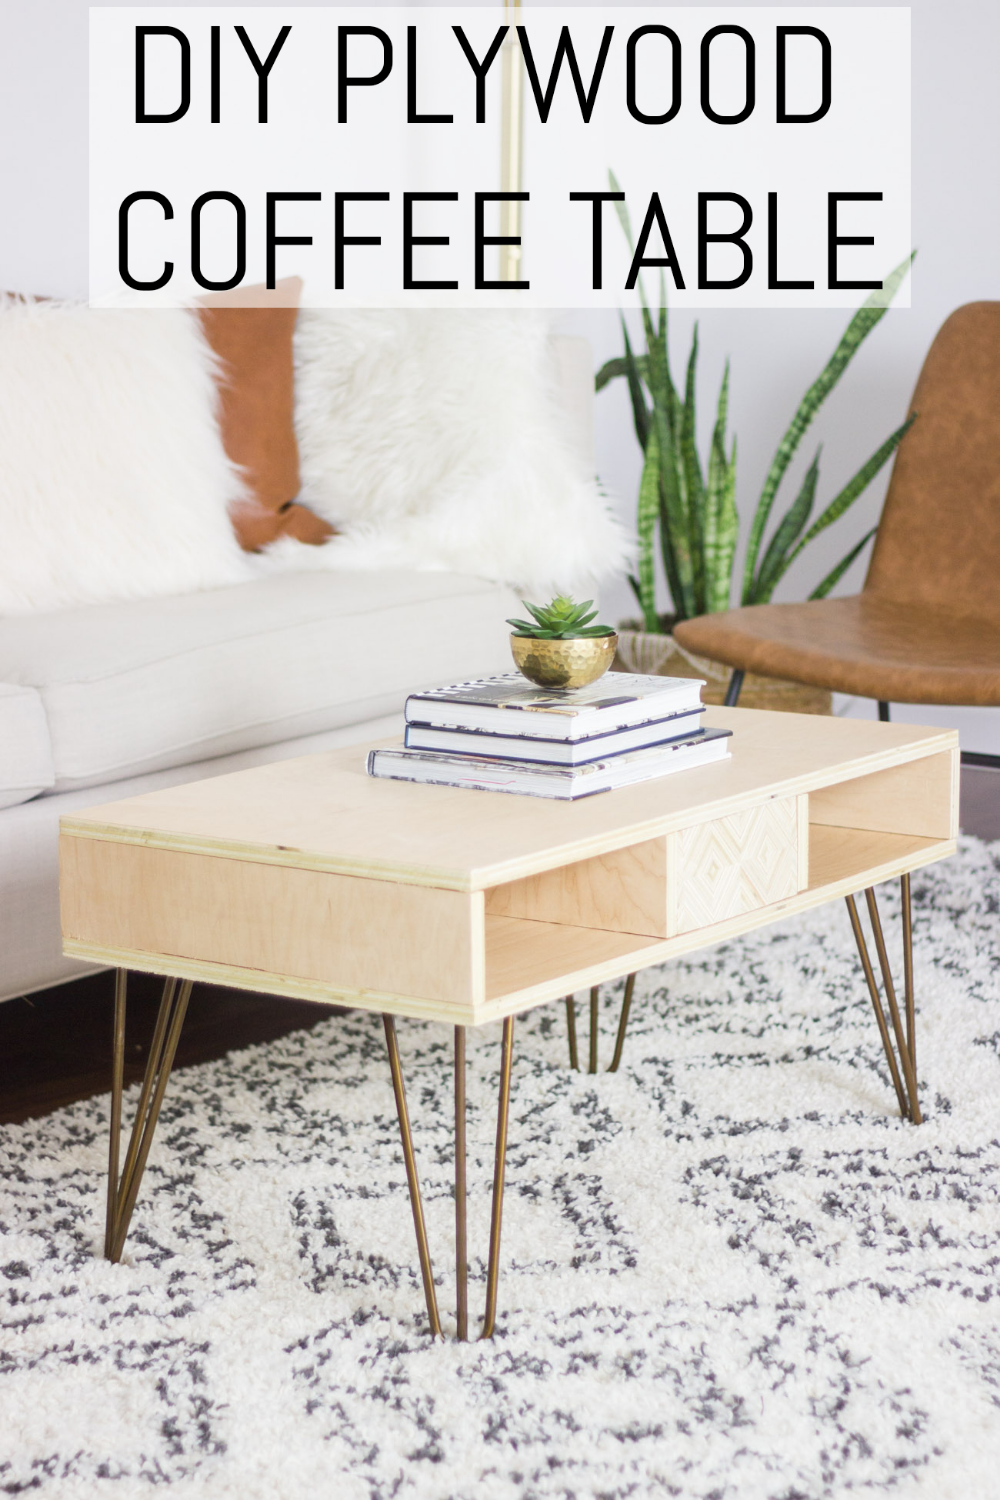 Learn How To Make This Diy Plywood Coffee Table With Patterned Plywood Panels That Attach With Magnets And Plywood Coffee Table Coffee Table Coffee Table Wood [ 1500 x 1000 Pixel ]